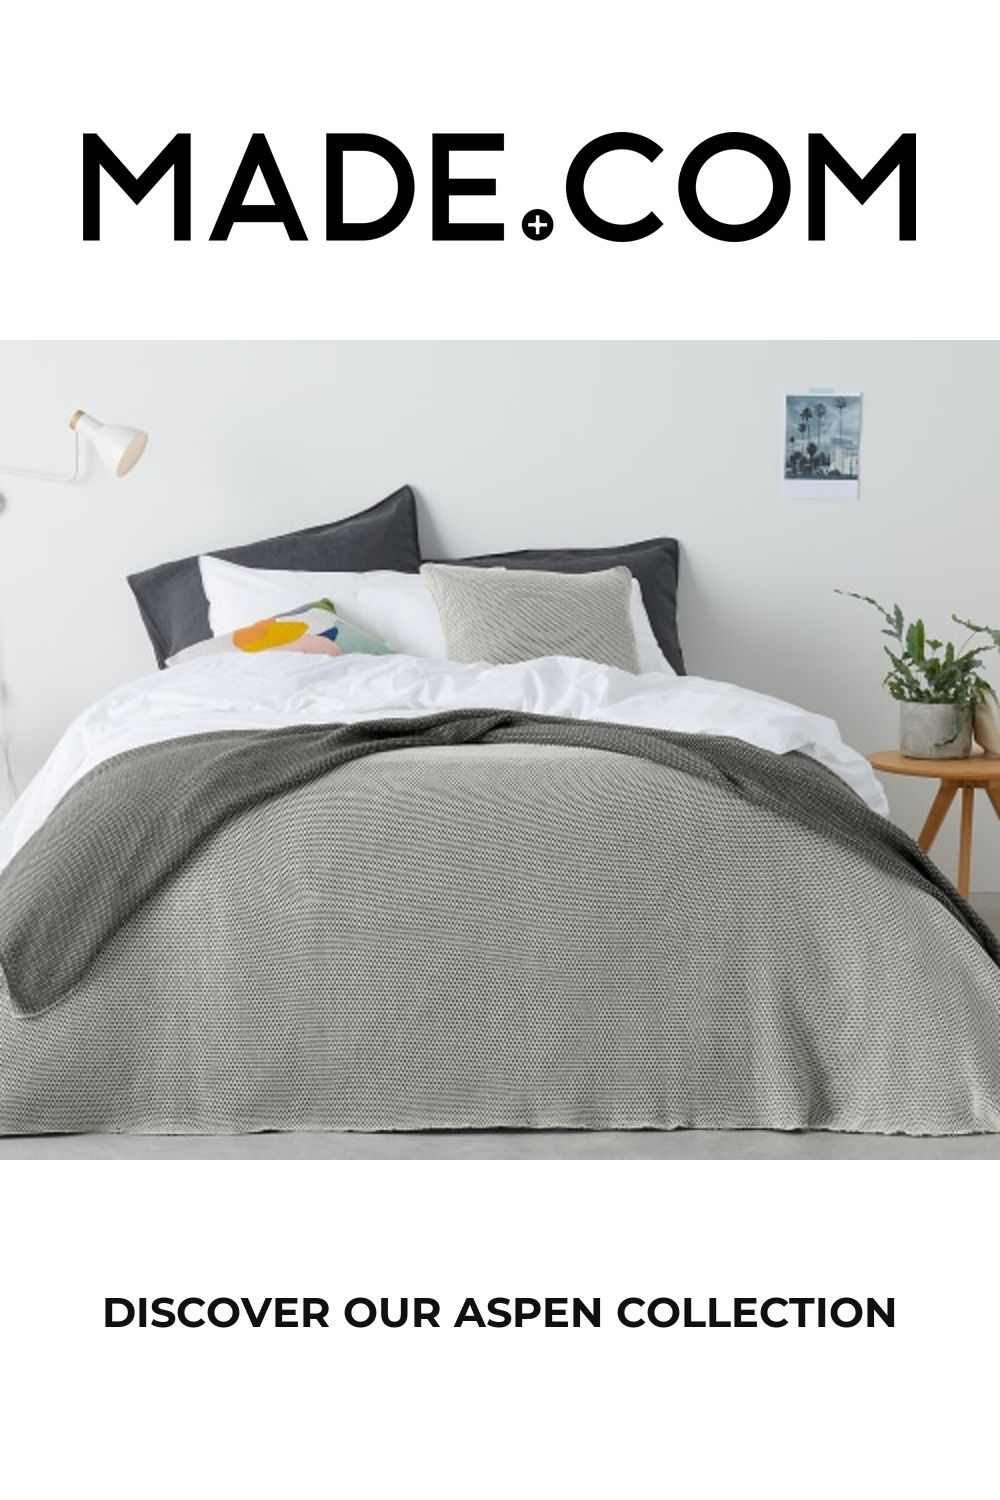 Aspen 100% Cotton Knitted Bed Throw, 150x200cm, Grey/Off White